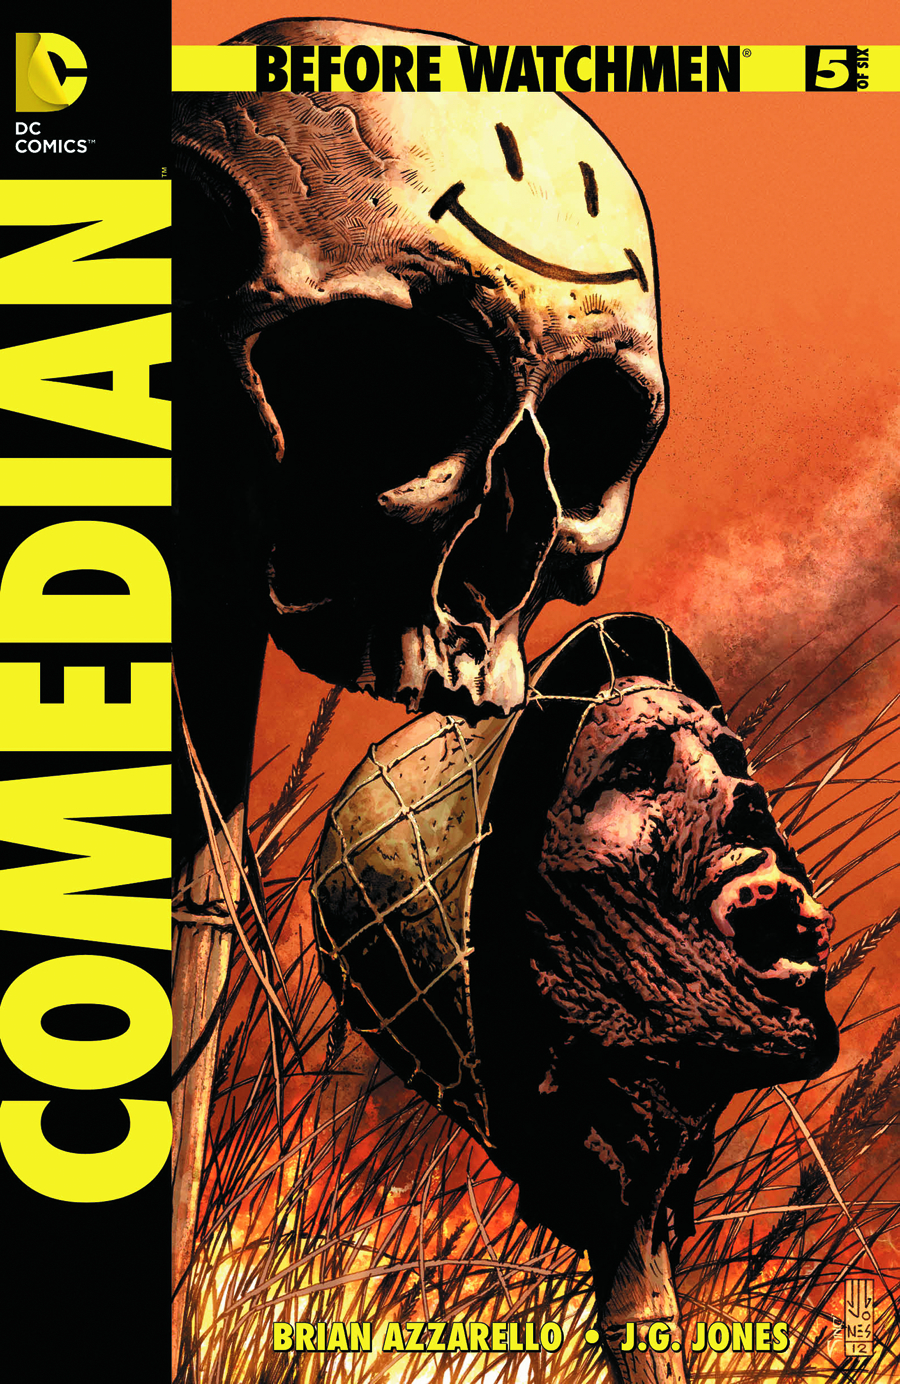 BEFORE WATCHMEN COMEDIAN #5 (OF 6) (RES)